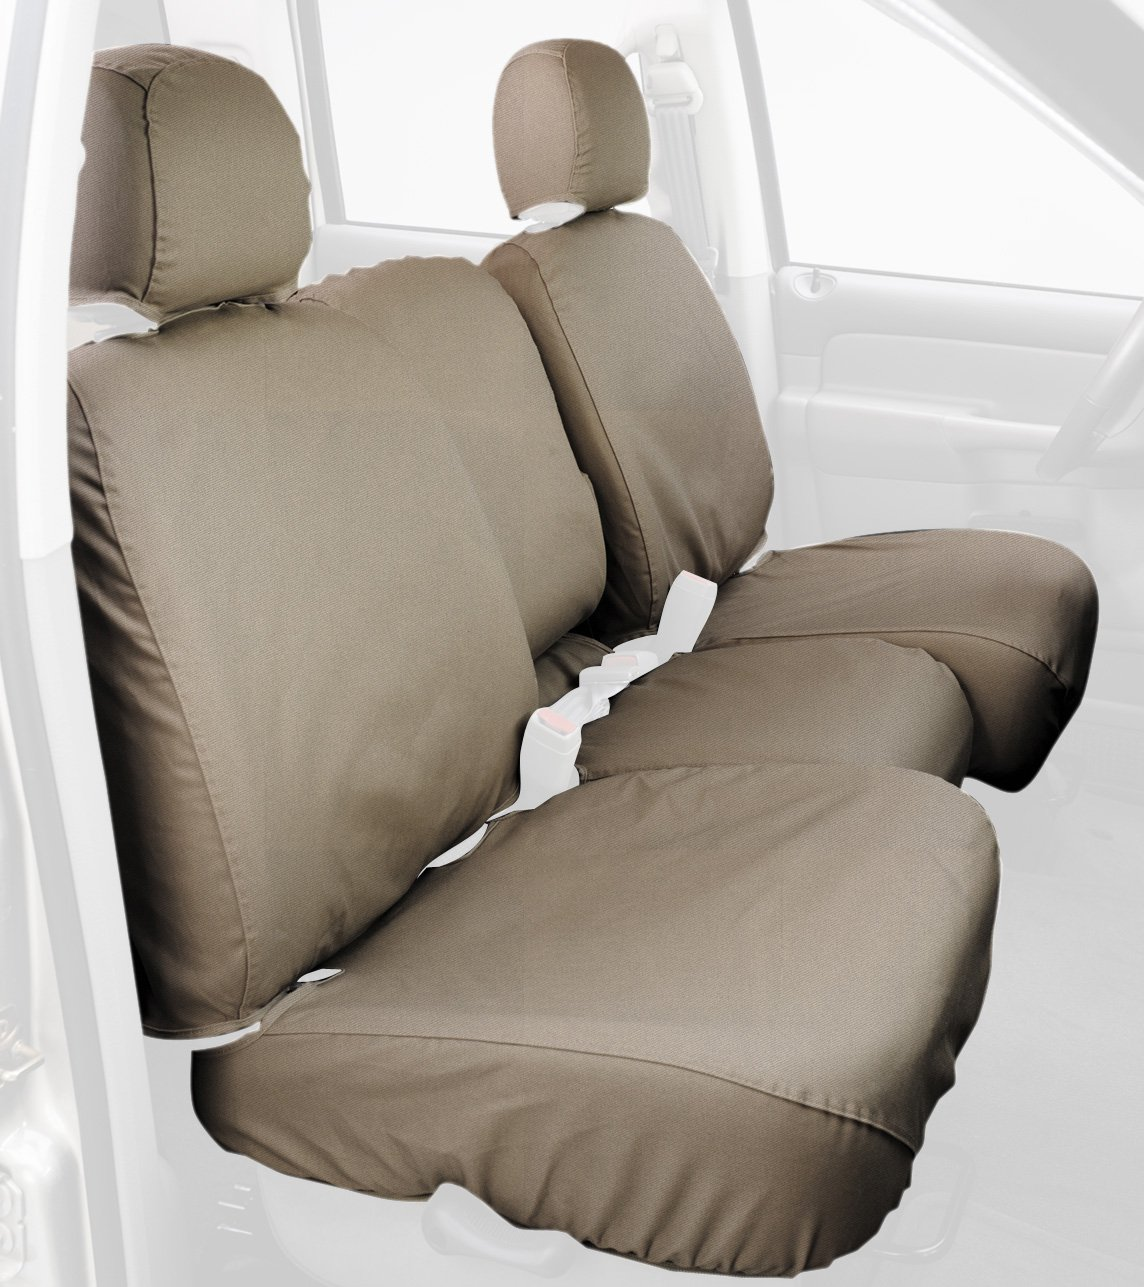 Durafit Seat Covers F396-X1//X7 for 2004-2005 Ford Ranger Pickup 60//40 Split Bench Seat Custom Seat Covers,with Opening Console Black//Gray Automotive Twill